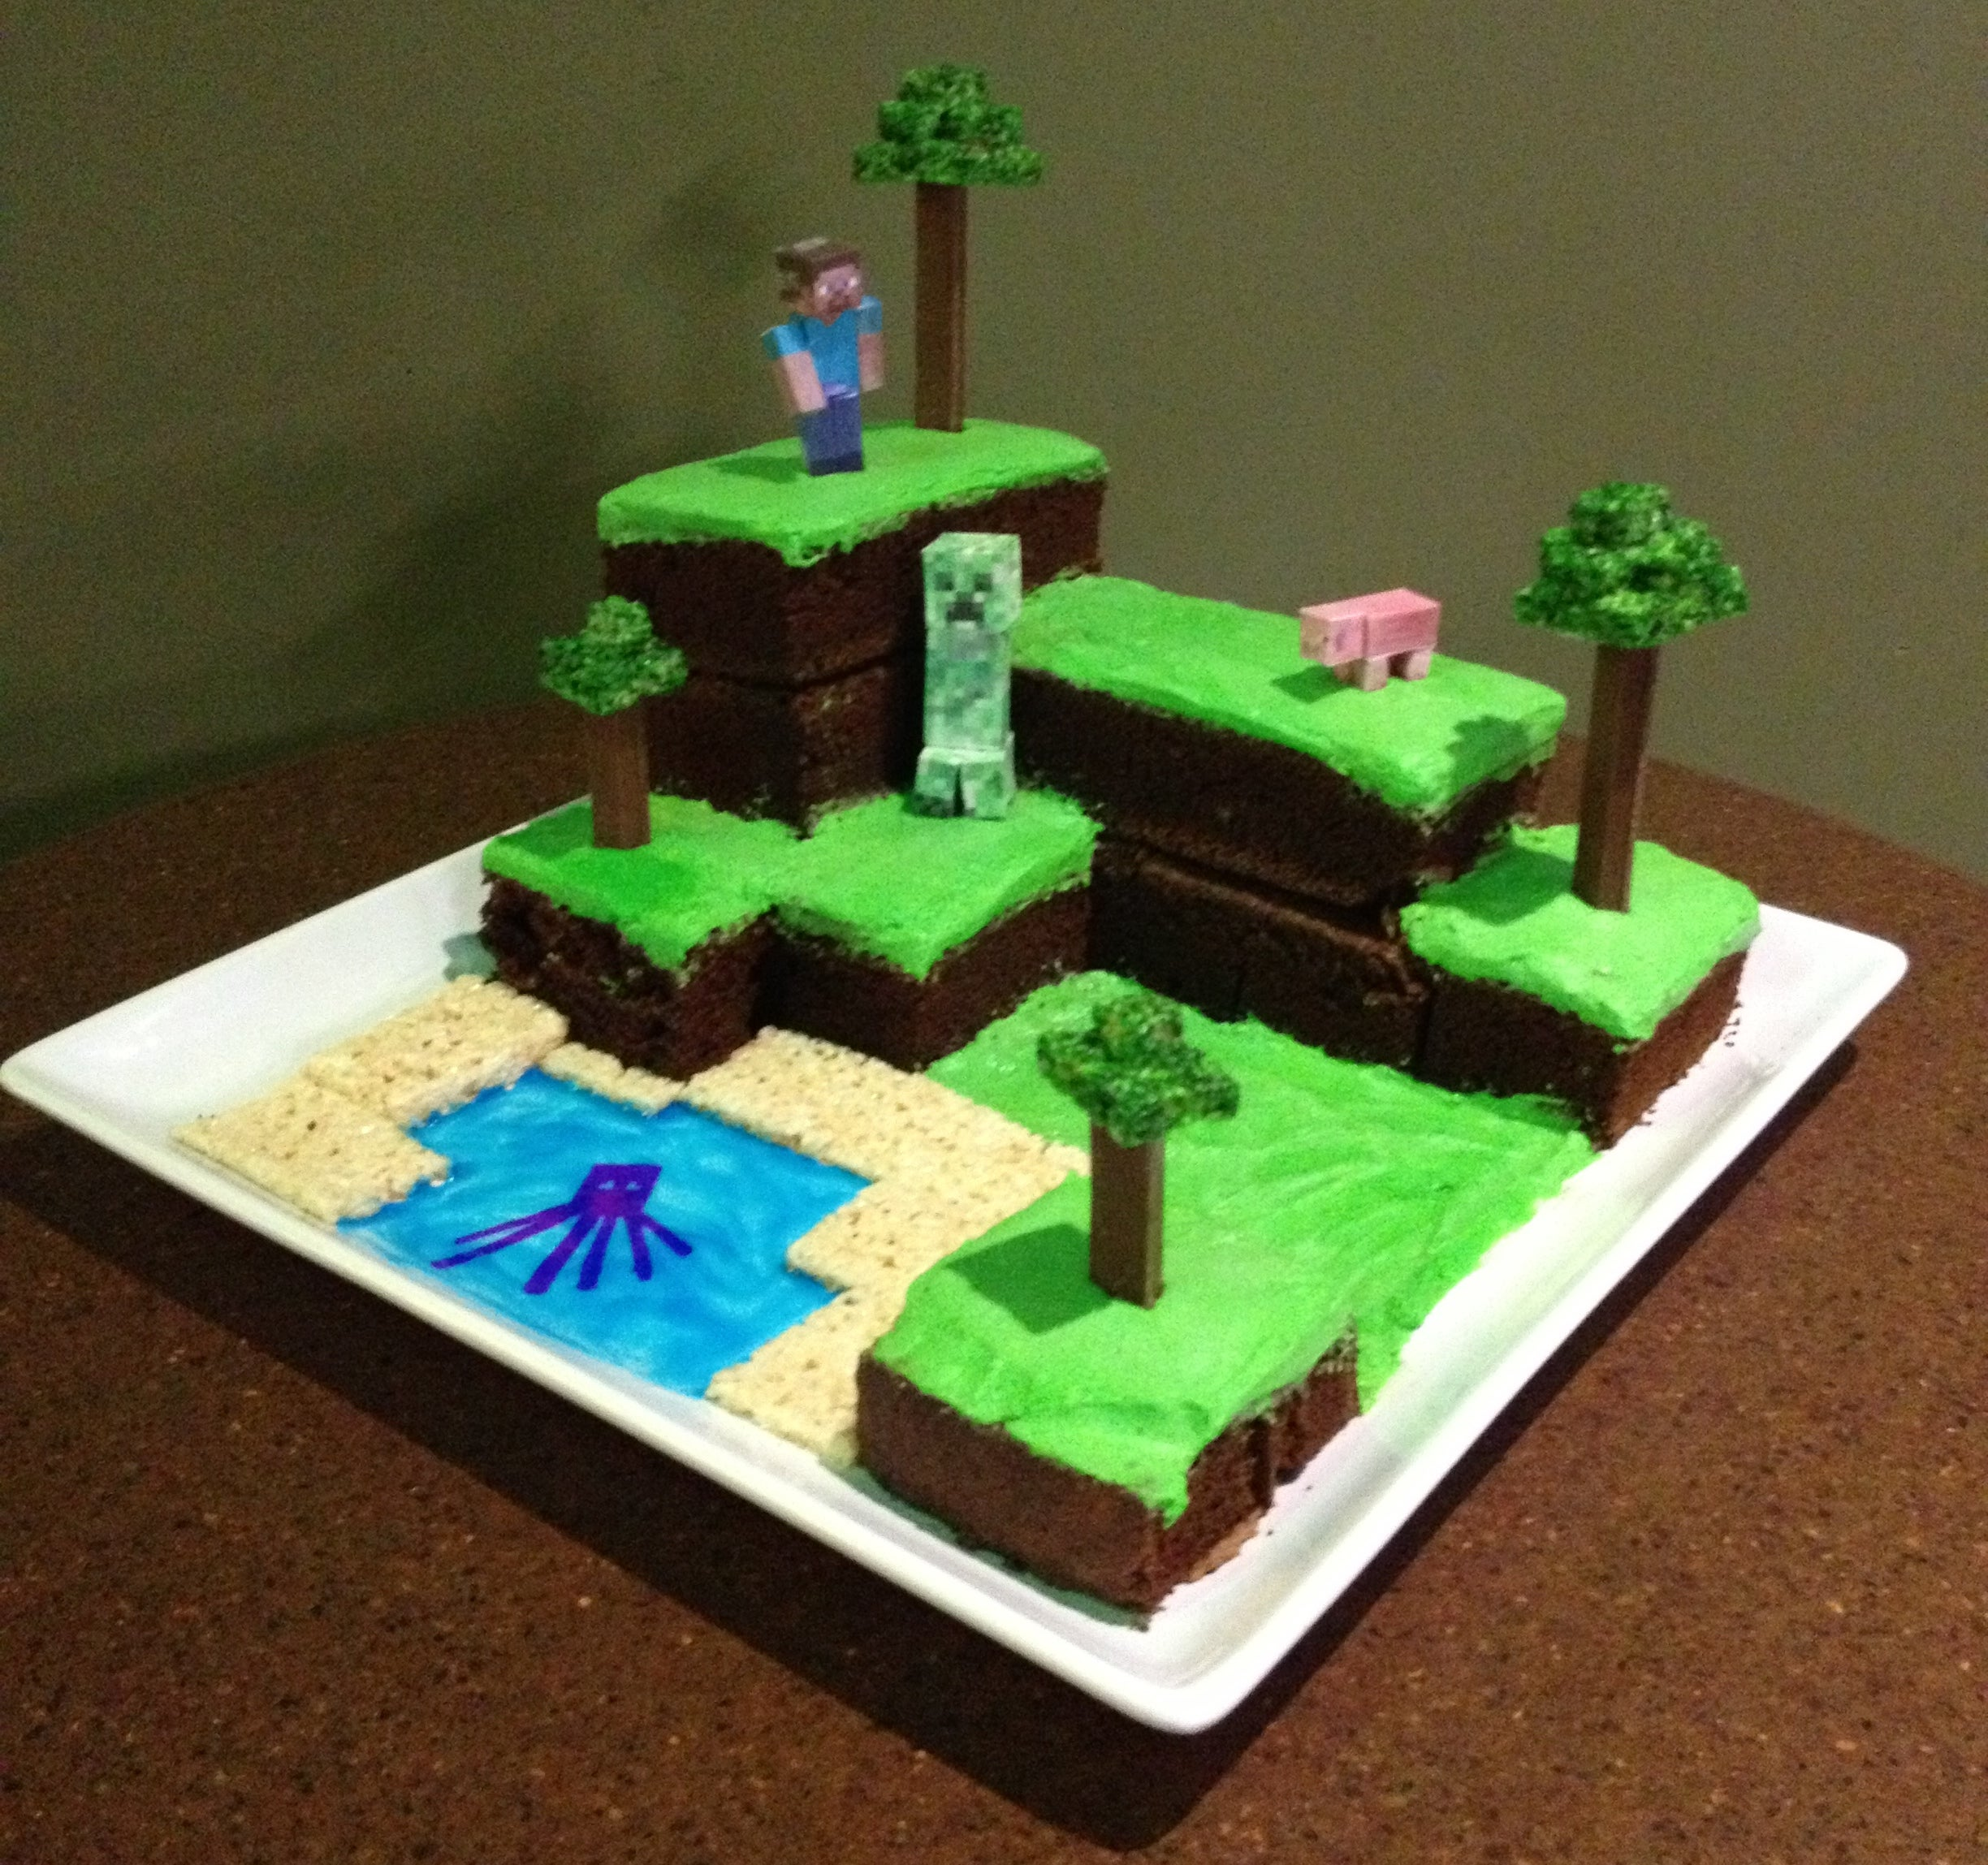 Minecraft World Cake (with Pictures) - Instructables